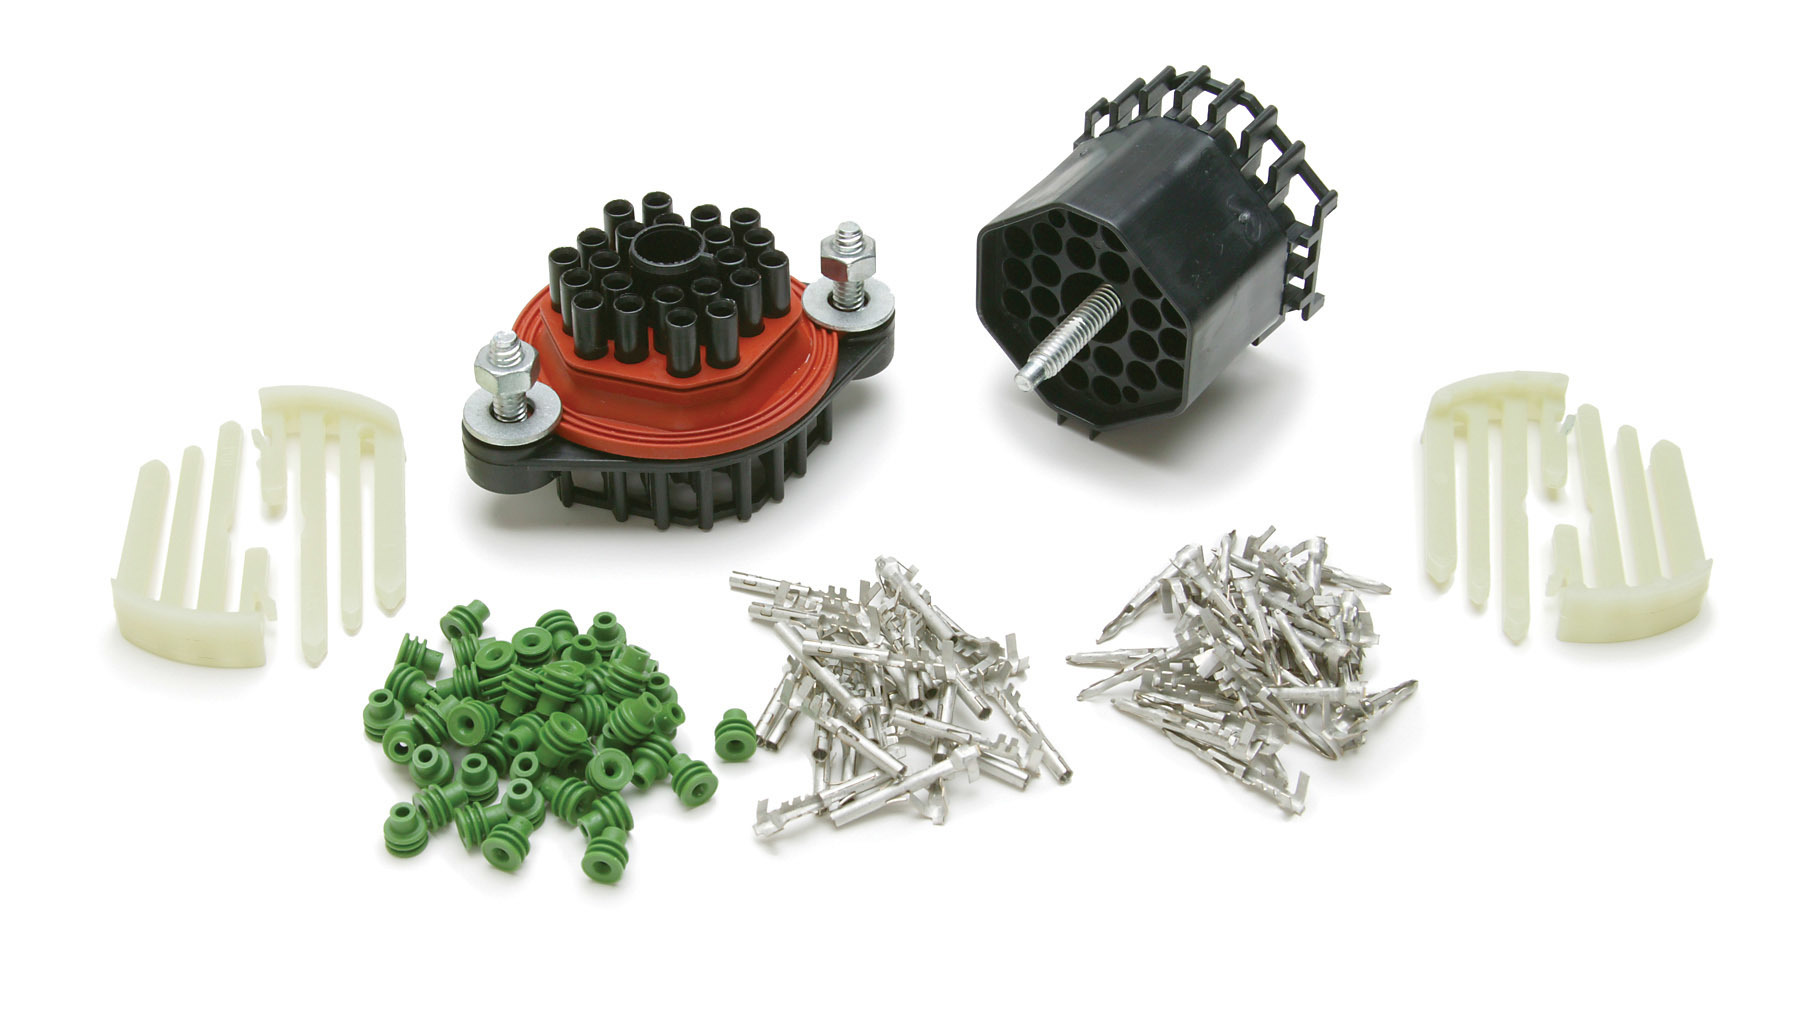 Painless Wiring 40130 Wire Bulkhead, Connector Style, Waterproof, 22 Pin, Terminals / Connectors Included, Universal, Kit